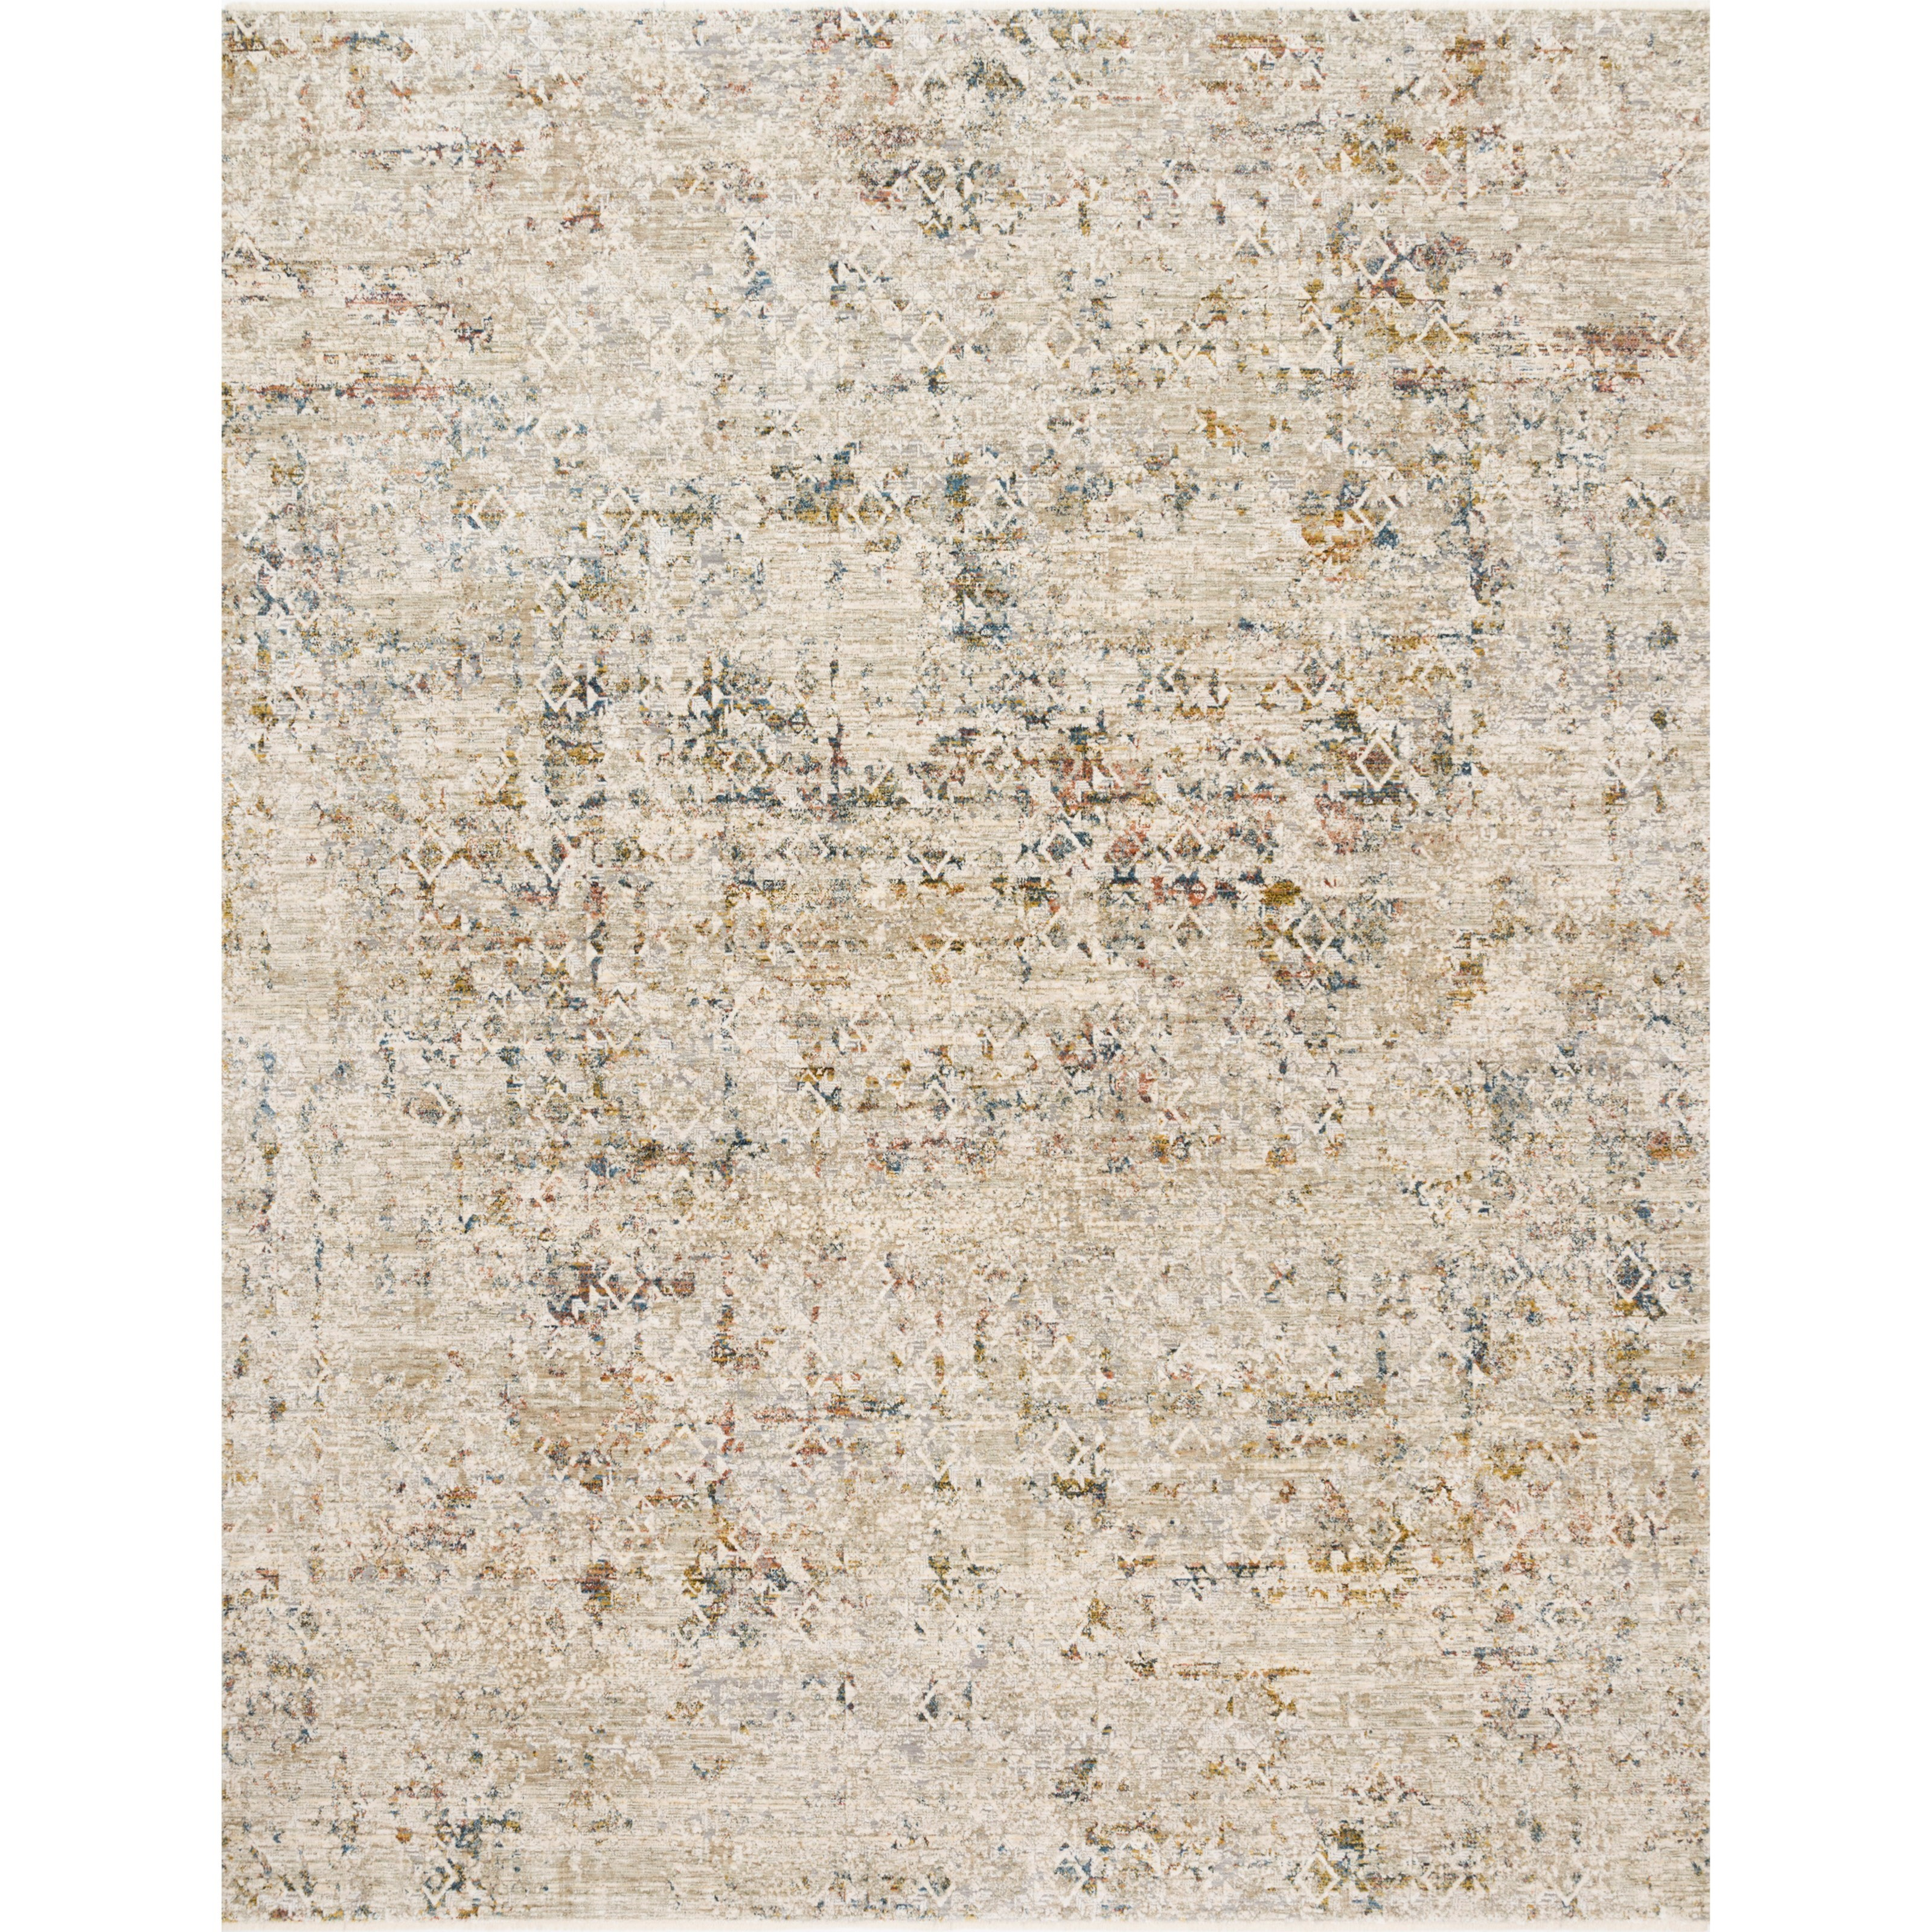 """Theia 6'7"""" x 9'6"""" Multi / Natural Rug by Loloi Rugs at Virginia Furniture Market"""